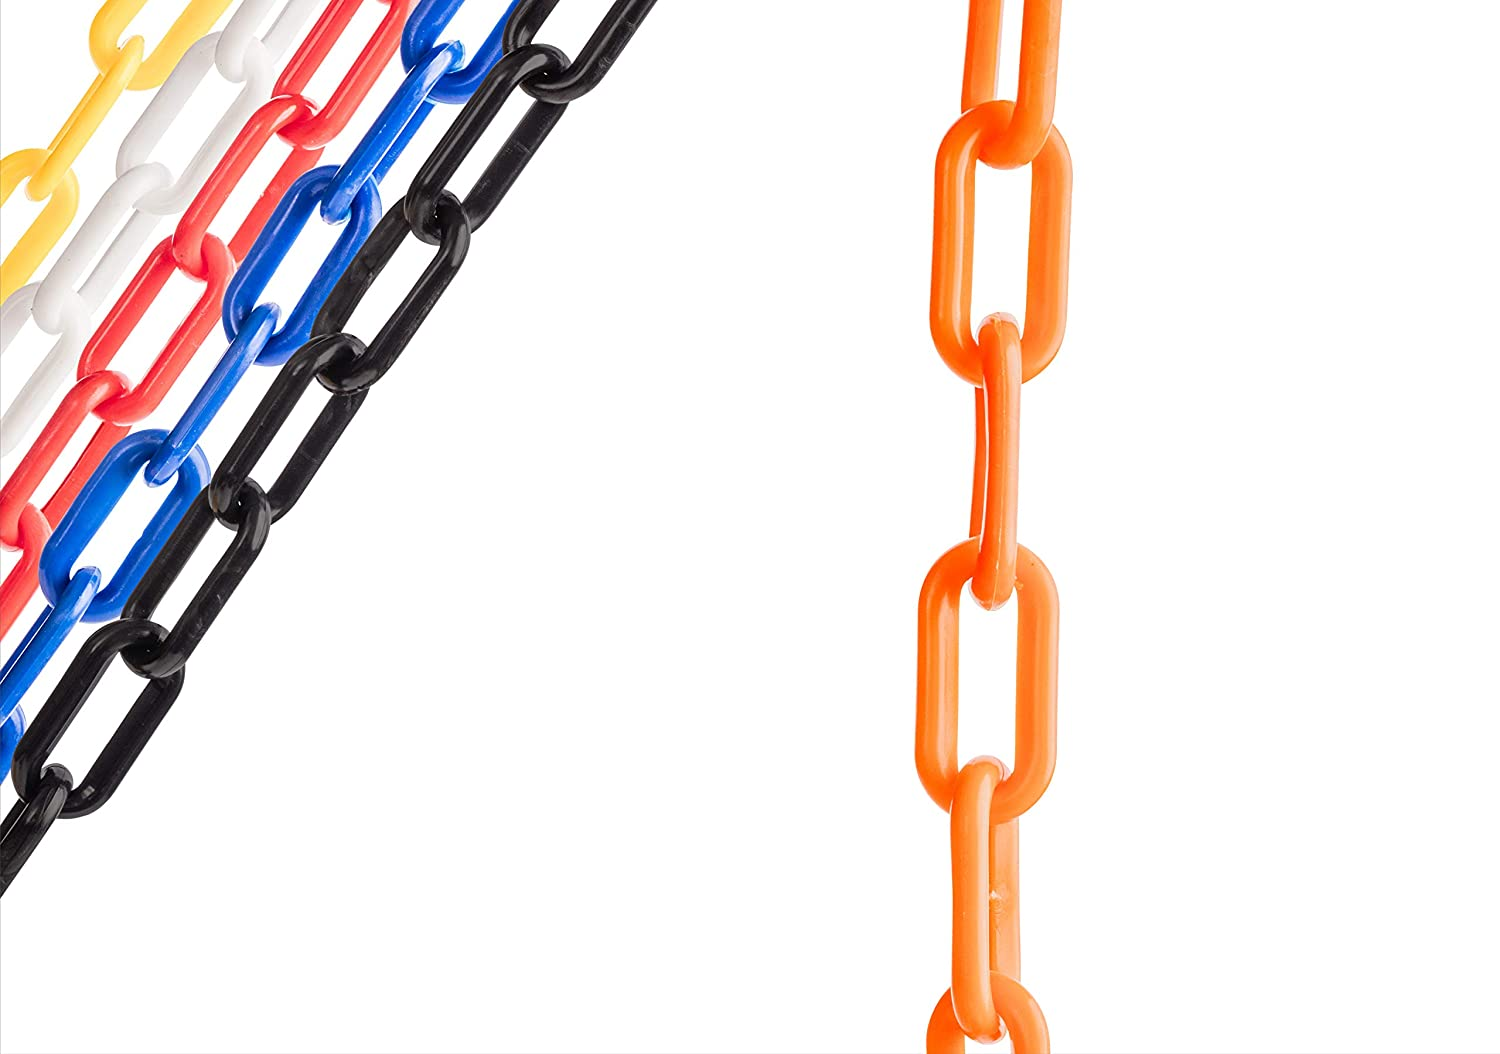 US Weight 50 FT Orange, 2-Inch Plastic Chain Links, Plastic Safety Barrier Chain Featuring SunShield UV Resistant Technology